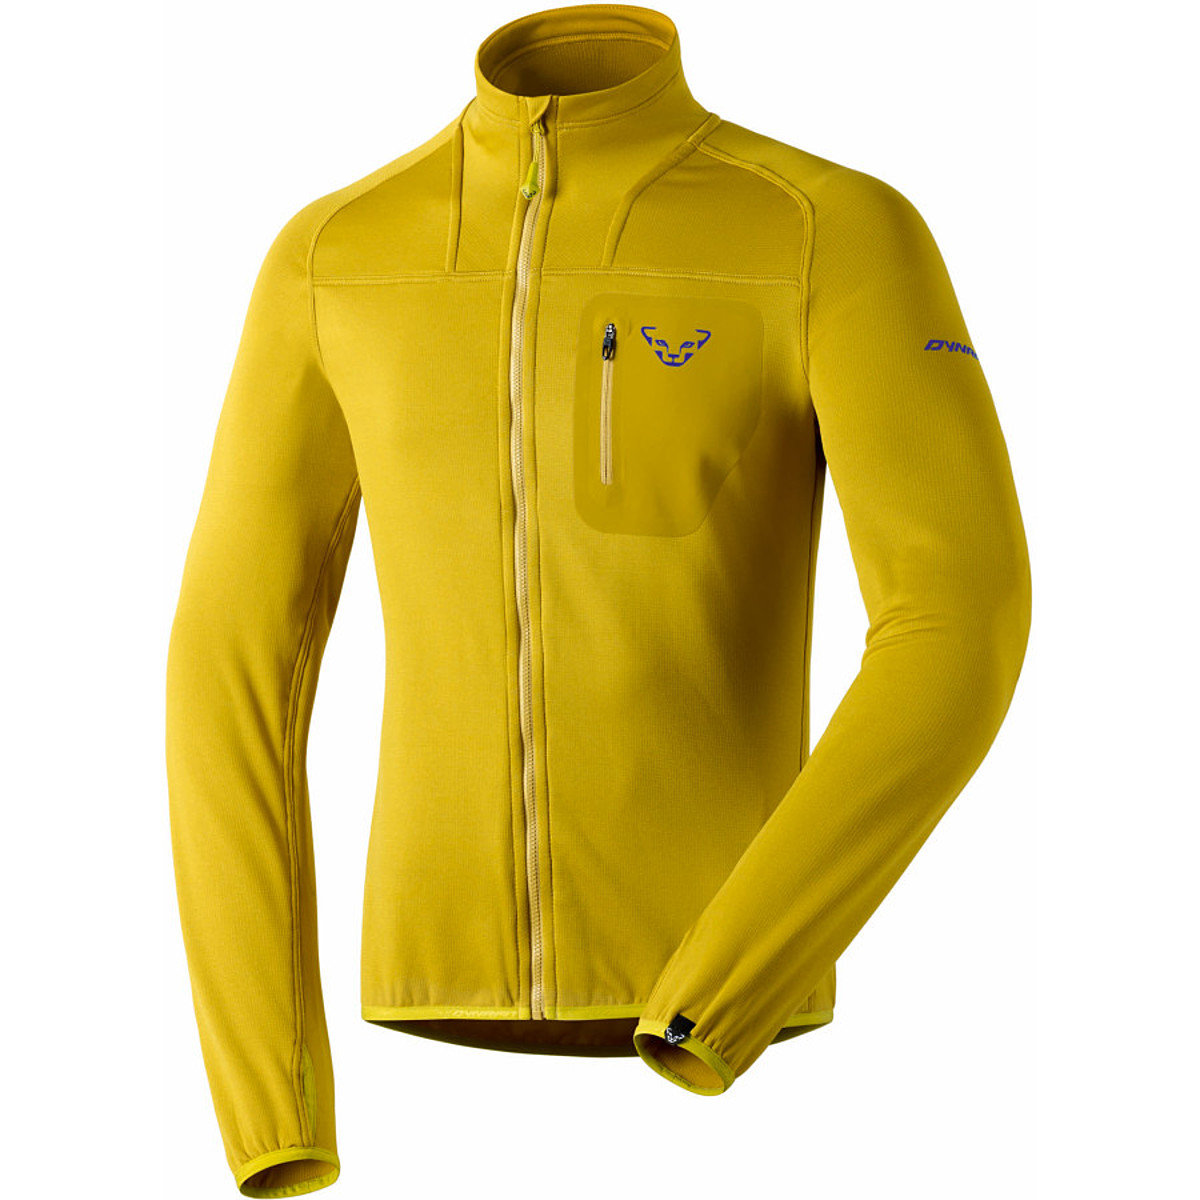 Dynafit Technostretch Thermal Layer Jacket